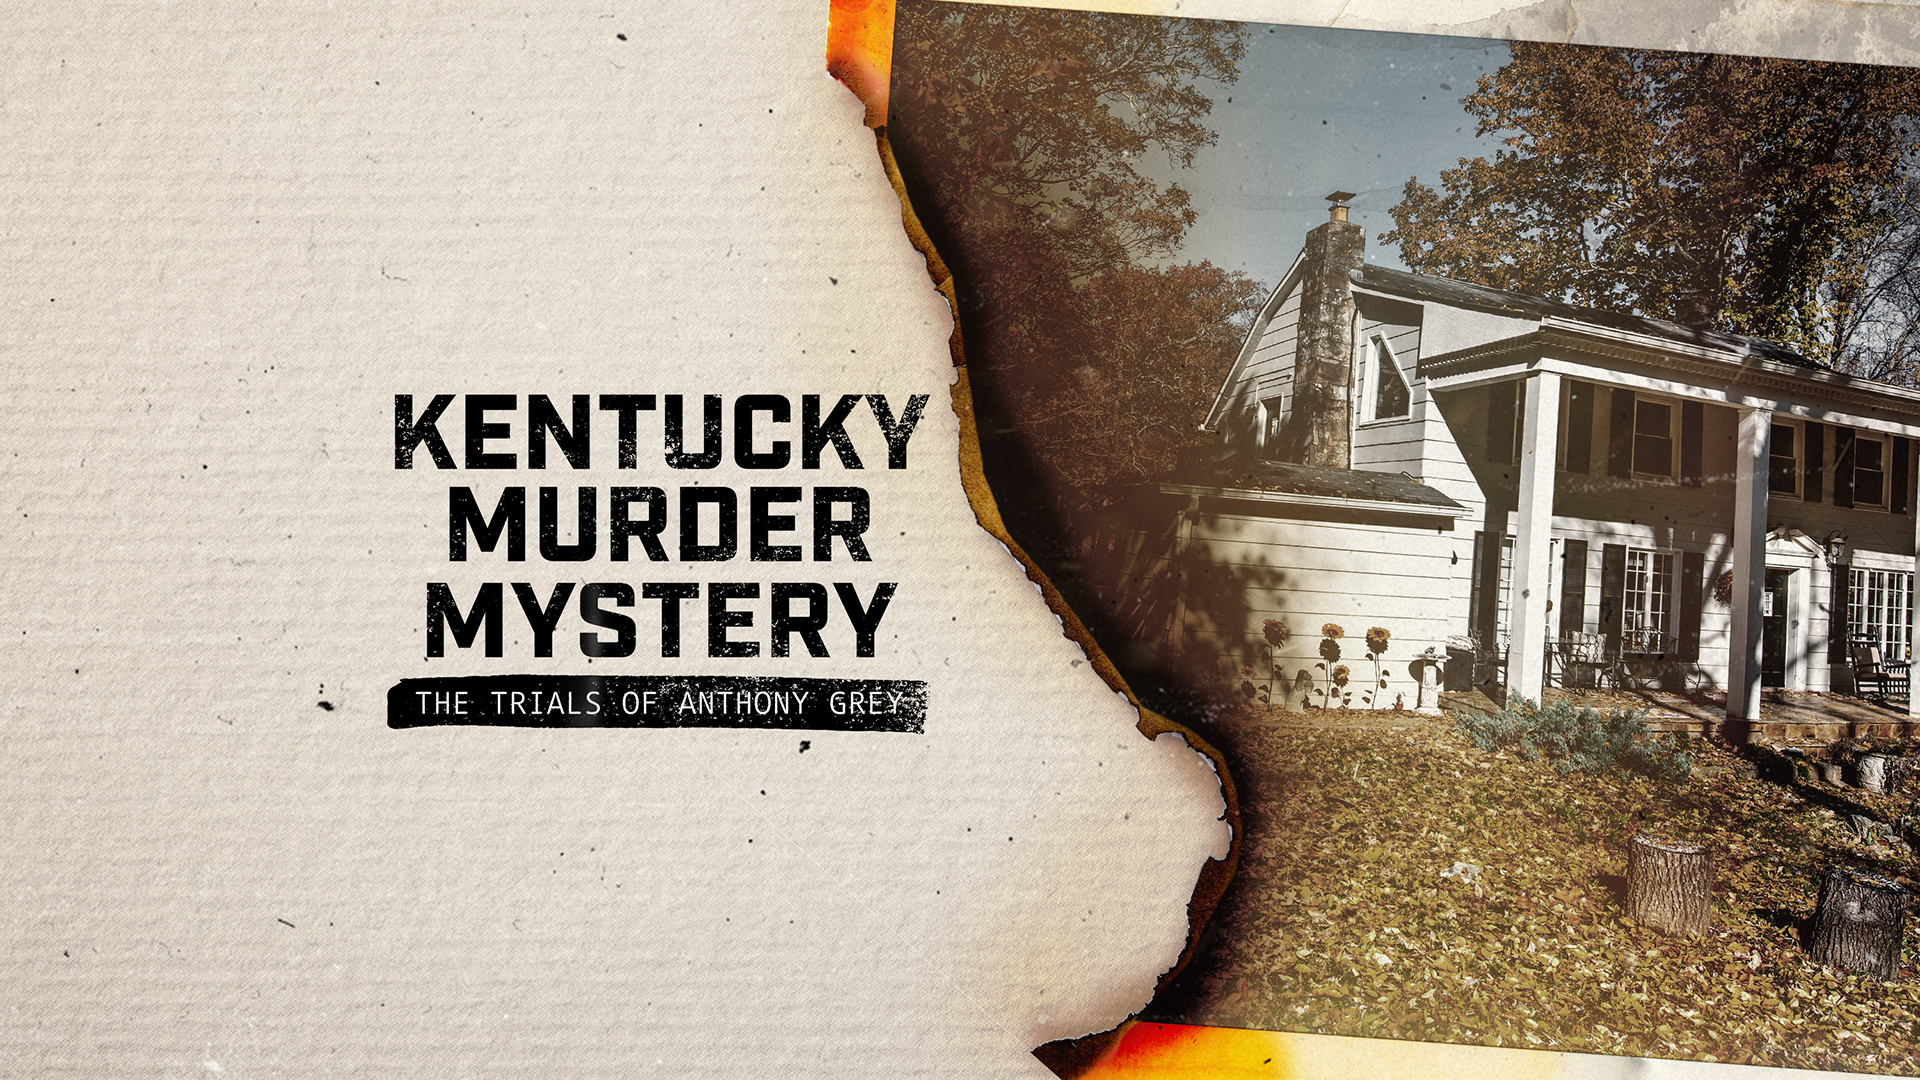 Kentucky Murder Mystery: The Trials of Anthony Gray - Season 1